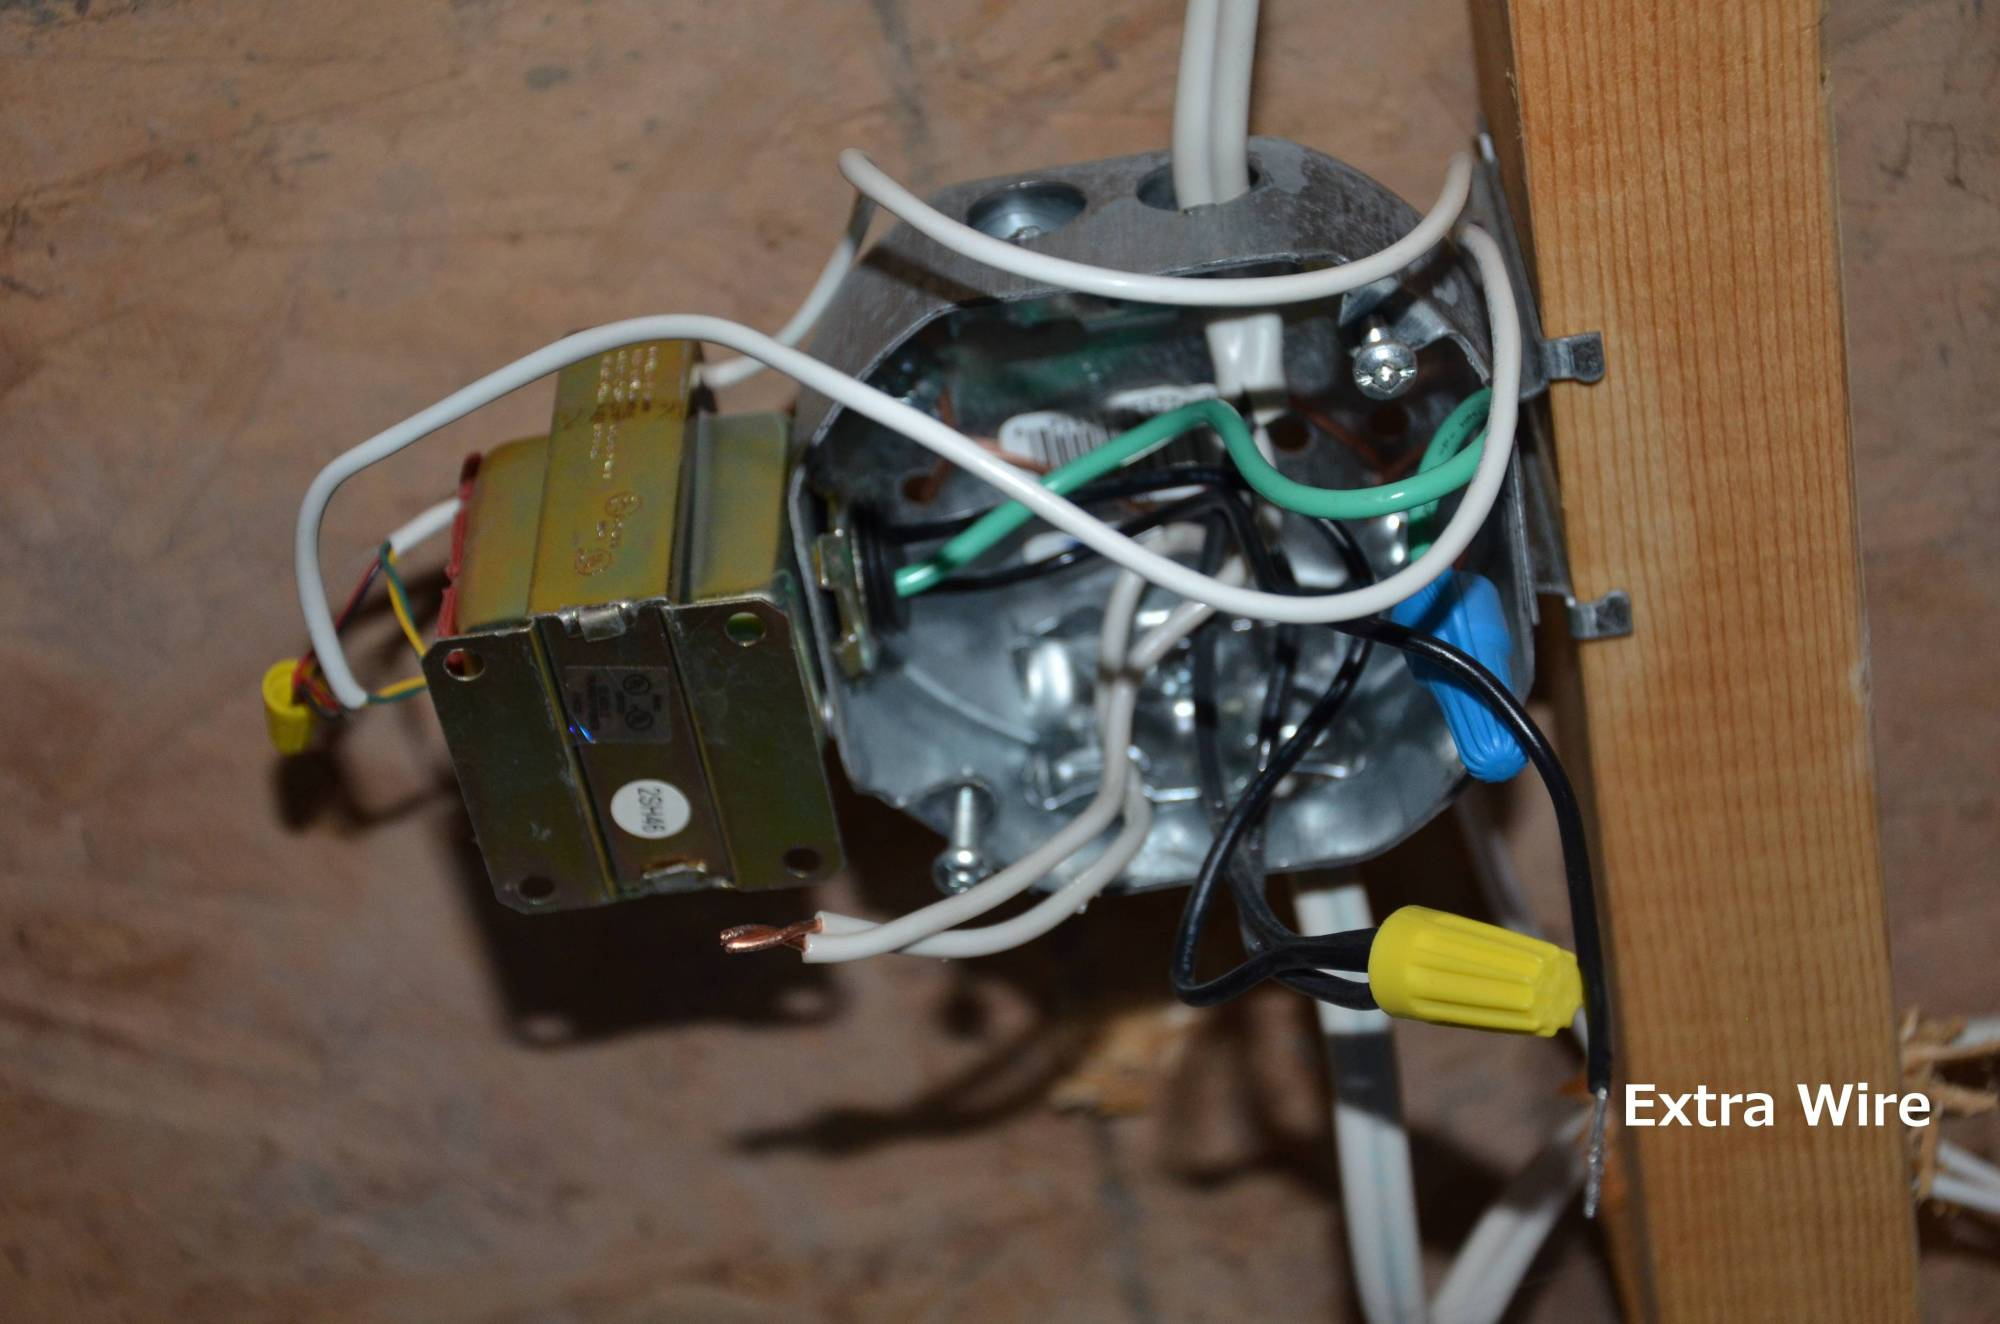 hight resolution of how do i hook up a new pull type light switch in my basement utility room